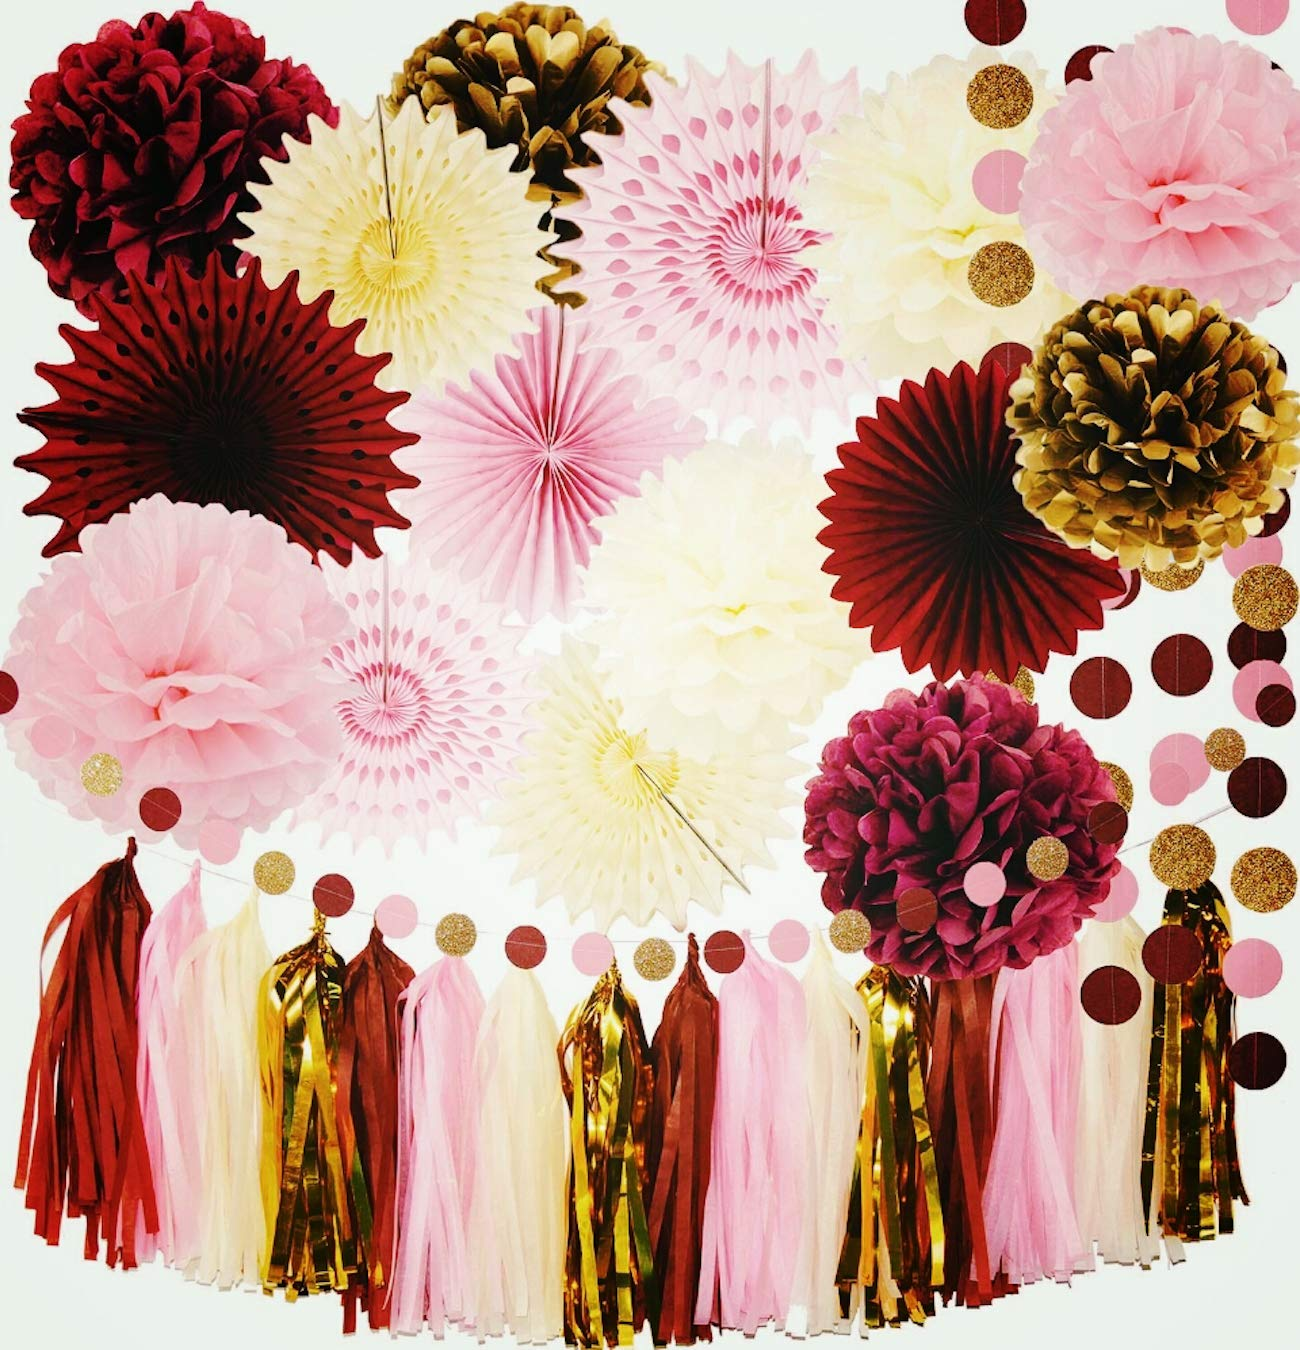 Fall Bridal Shower Decorations Qian's Party Maroon Party Decorations Burgundy Pink Gold Fall Birthday Decorations Tissue Paper Pom Pom Autumn Burgundy Wedding/Bachelorette Party Decorations by Qian's Party